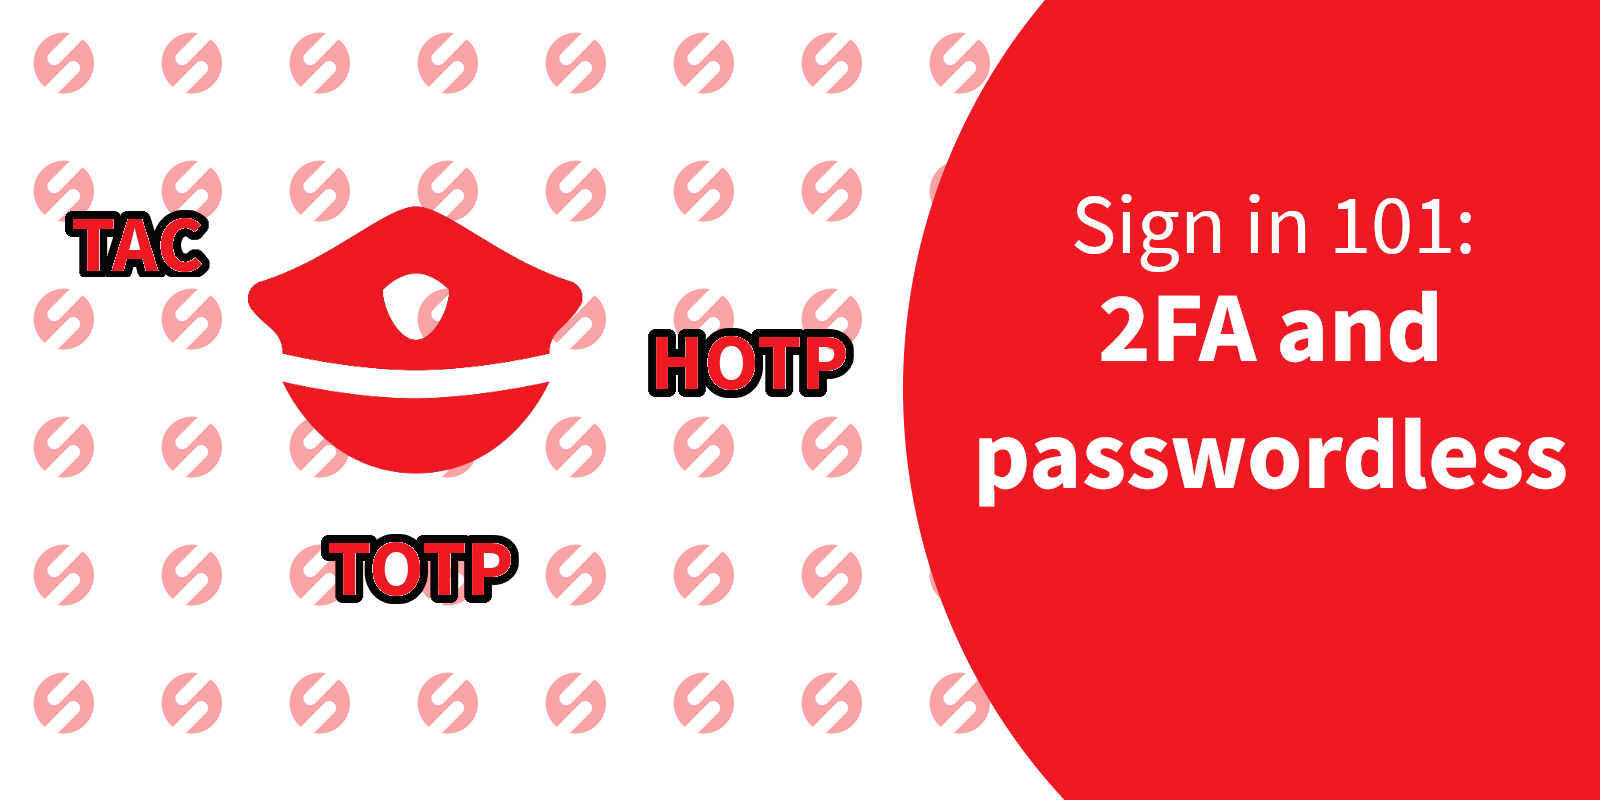 2FA and passwordless